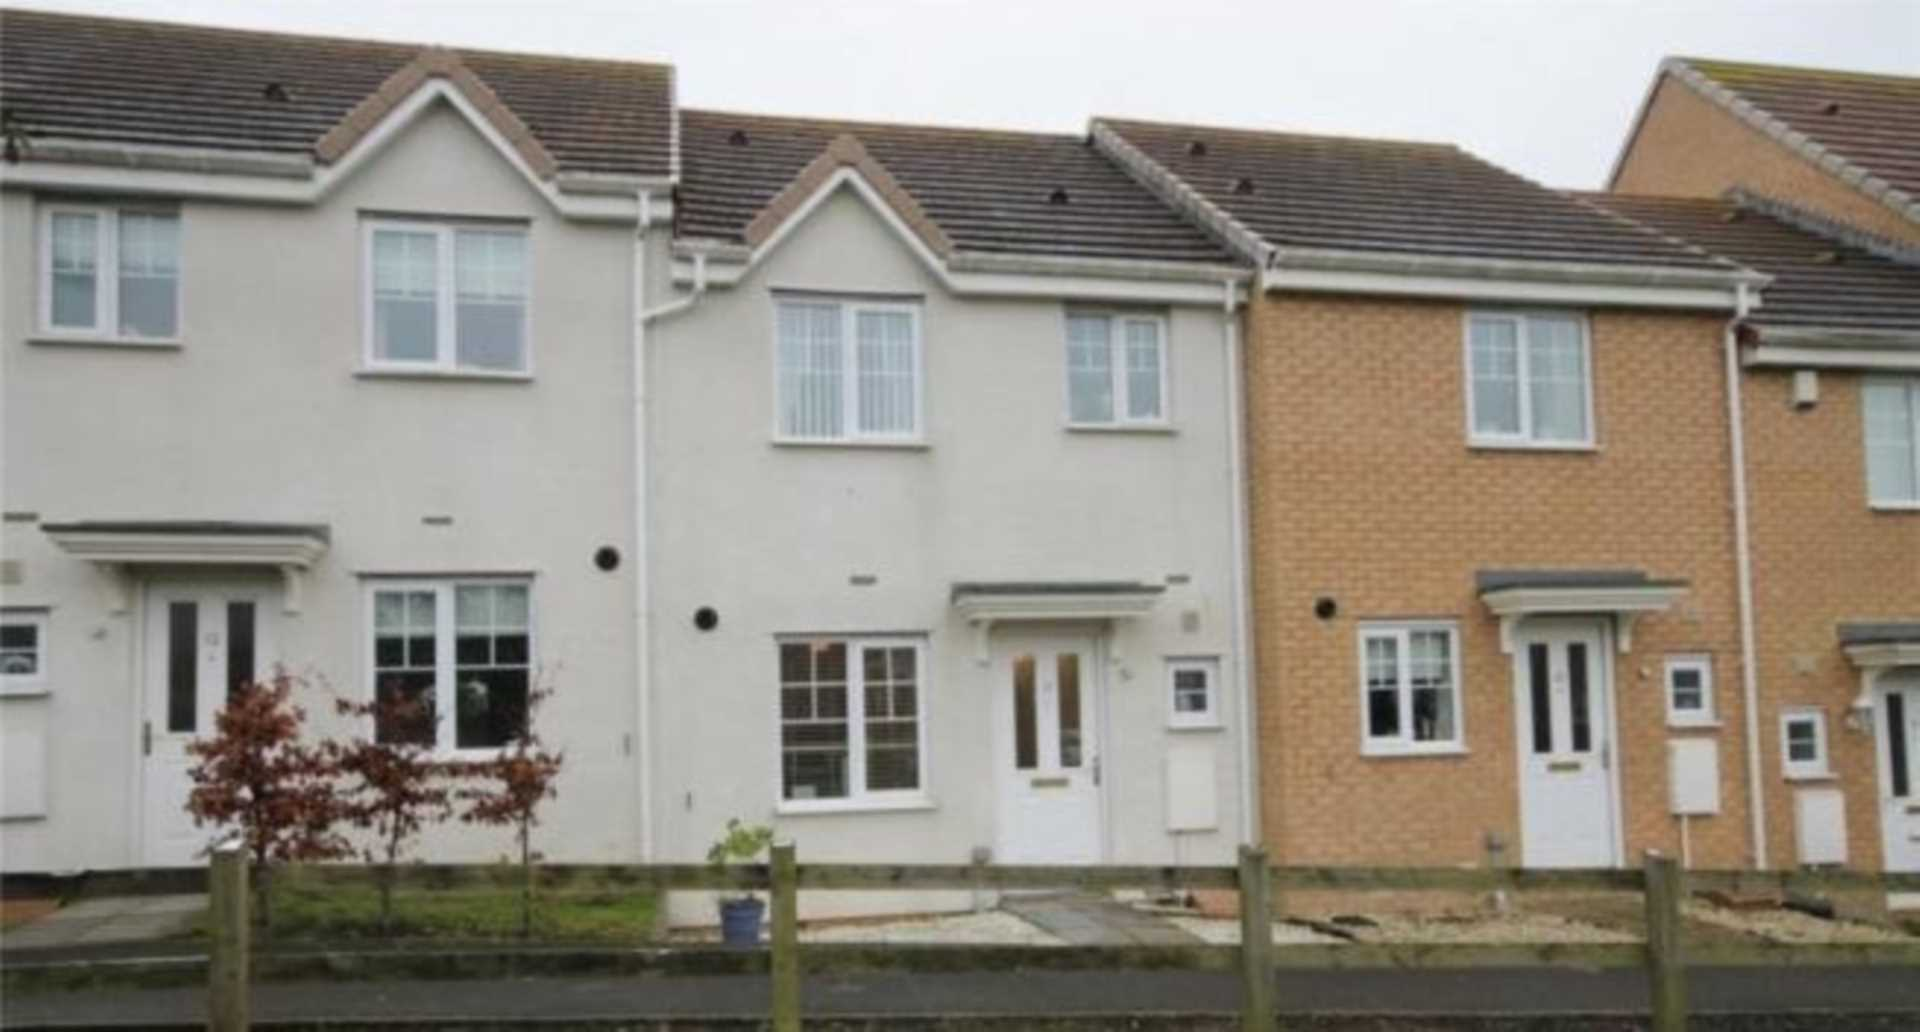 3 Bedroom Terrace, The Green, Consett